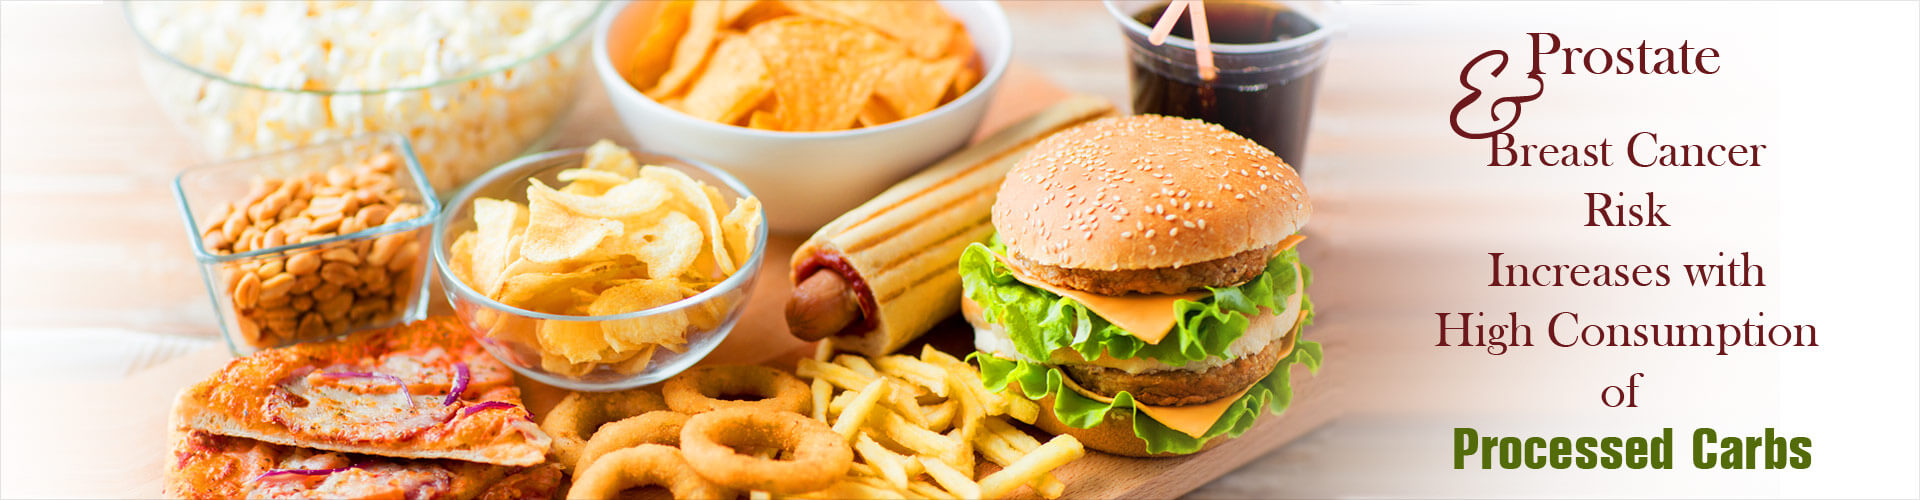 Highly Processed Carbs Linked to Increased Risk of Prostate, Breast Cancer